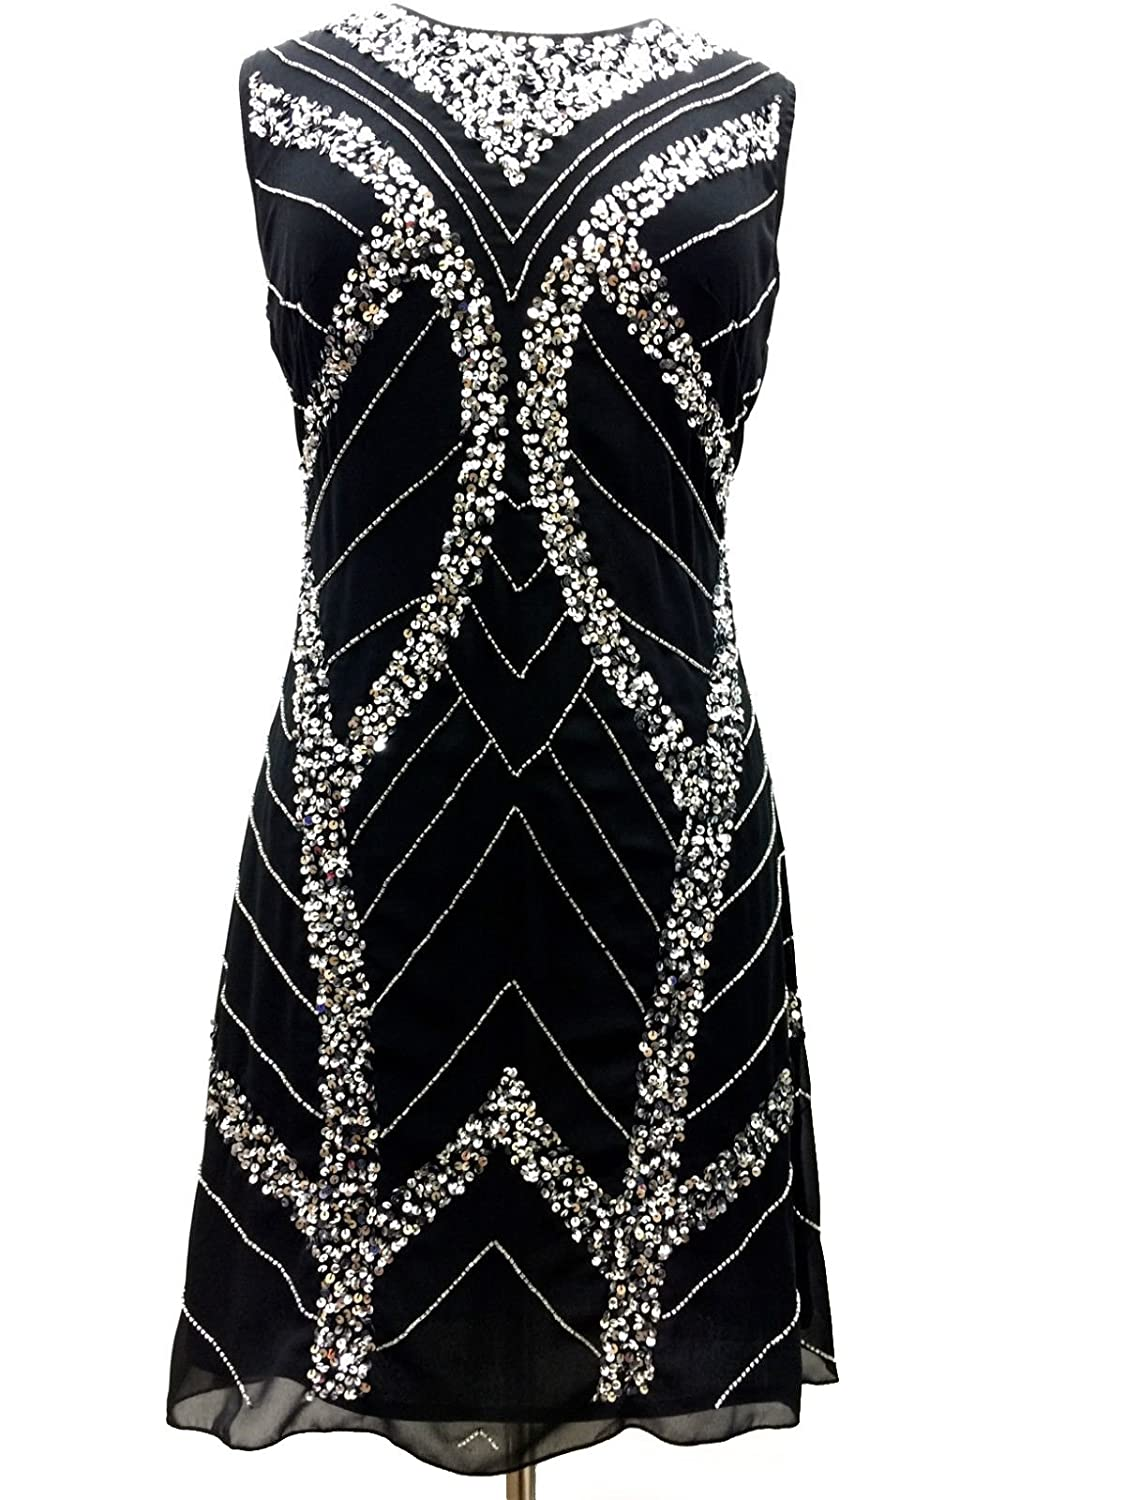 1920's Style Gatsby Tunic Top Evening Embellish Shift Dress Vintage Dress